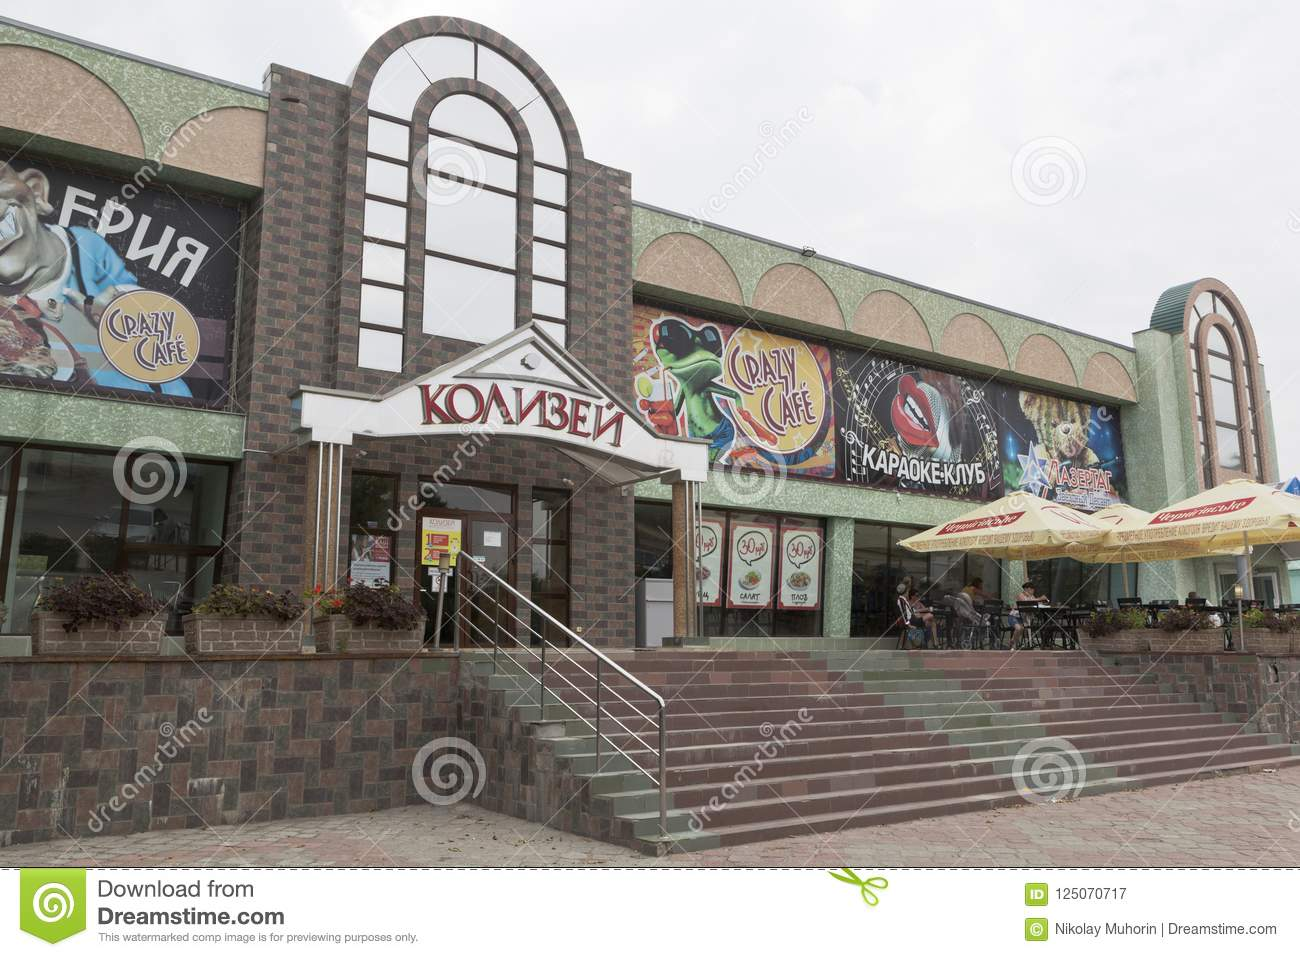 Shopping centers of Crimea: a selection of sites